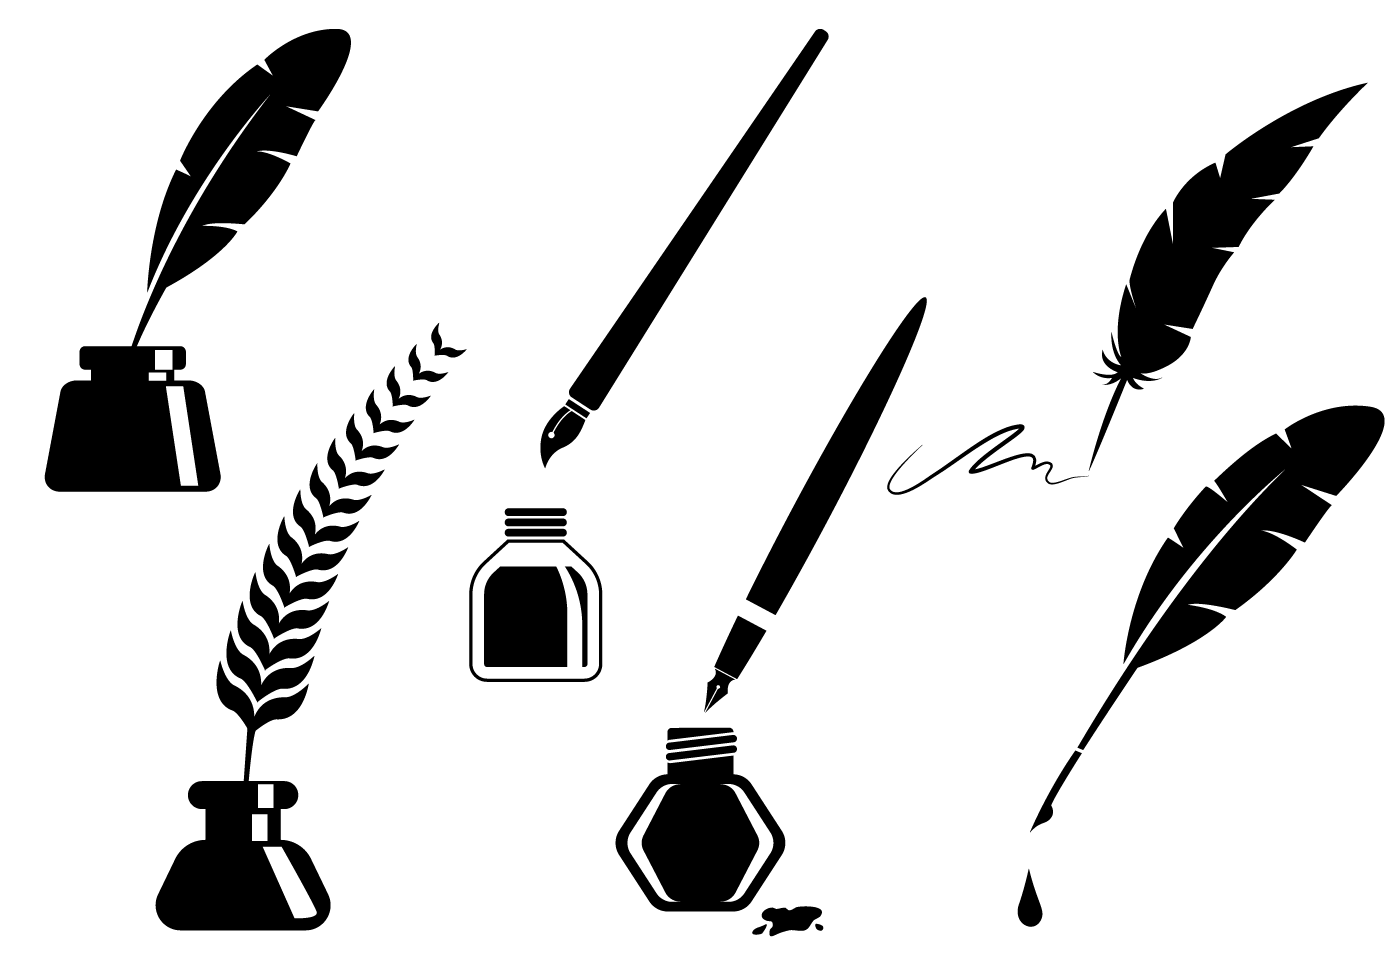 Feather Pen Vector At Getdrawings